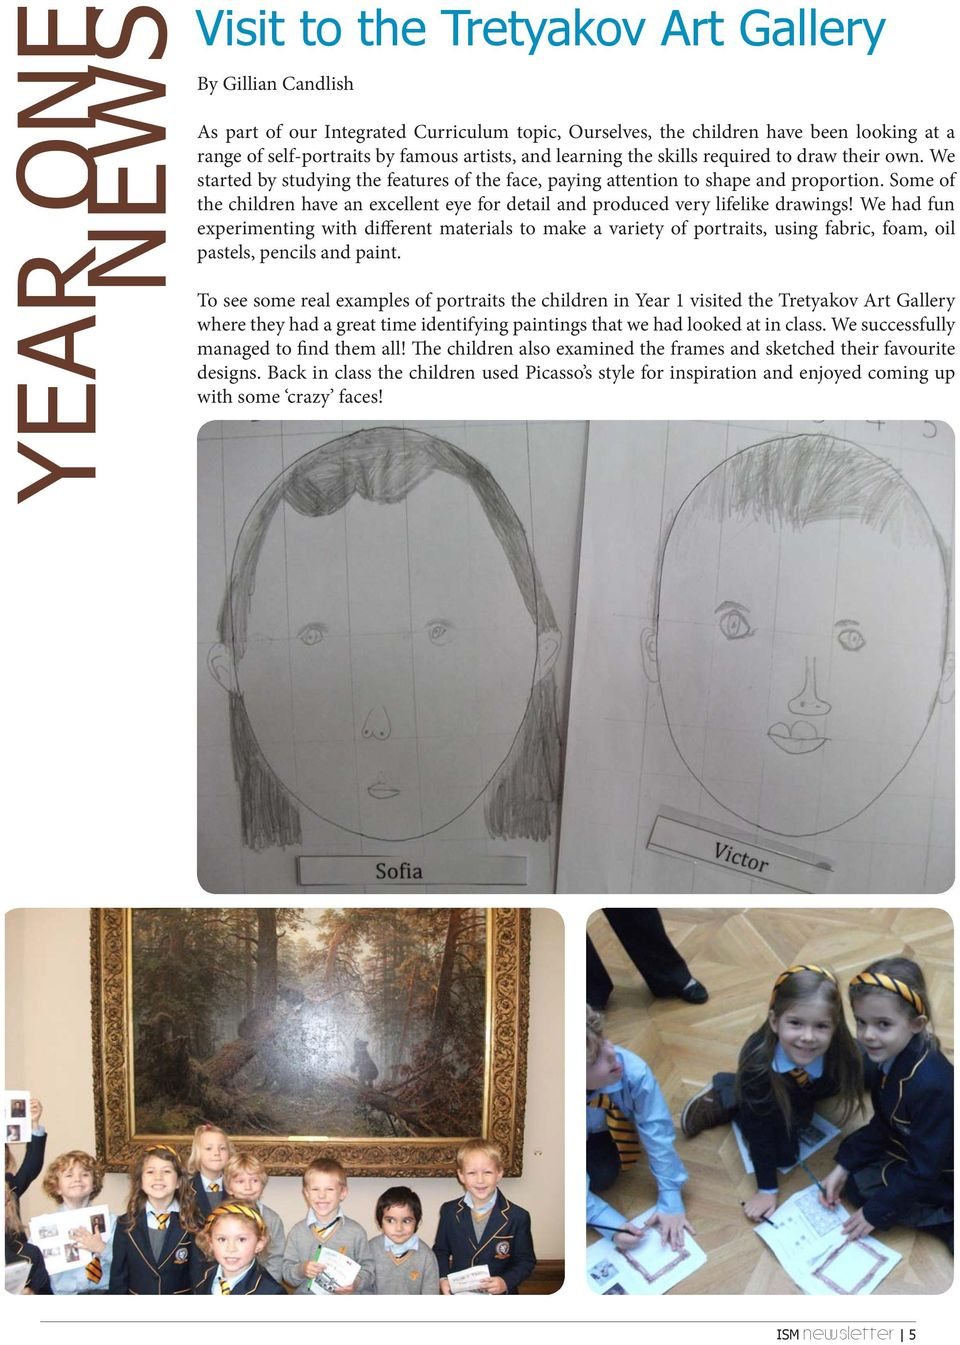 Some of the children have an excellent eye for detail and produced very lifelike drawings!